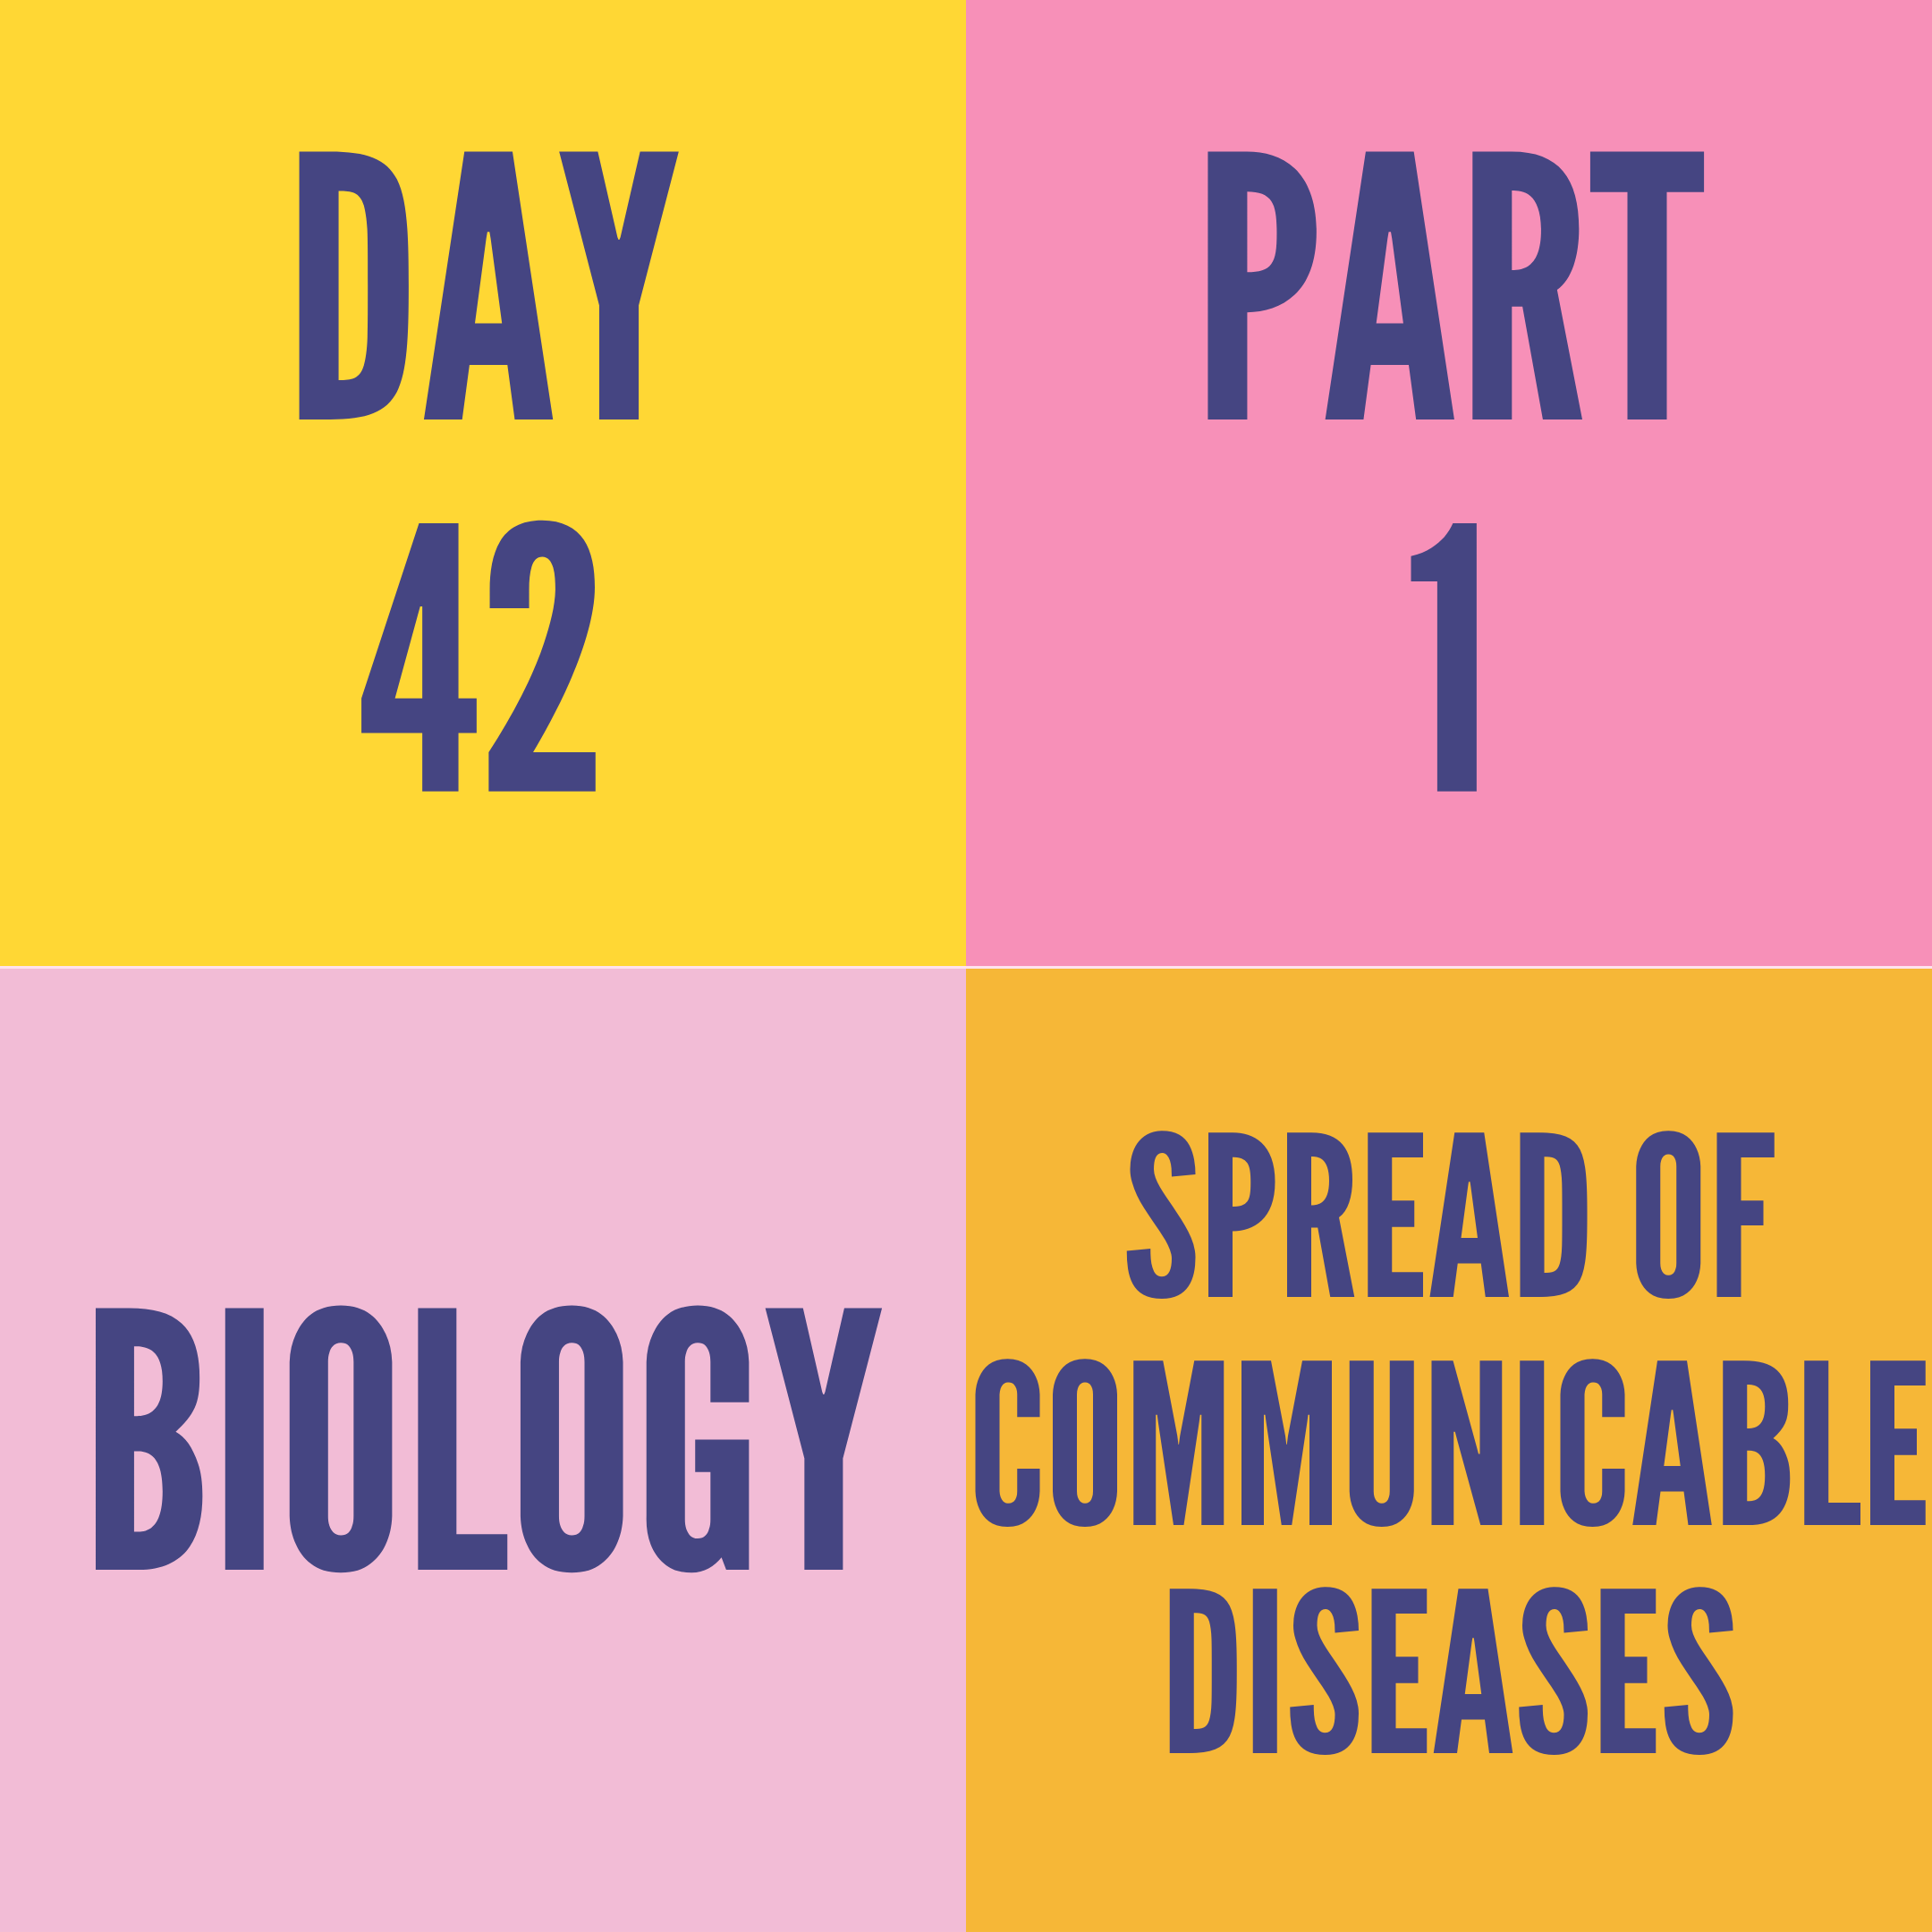 DAY-42 PART-1 SPREAD OF COMMUNICABLE DISEASES